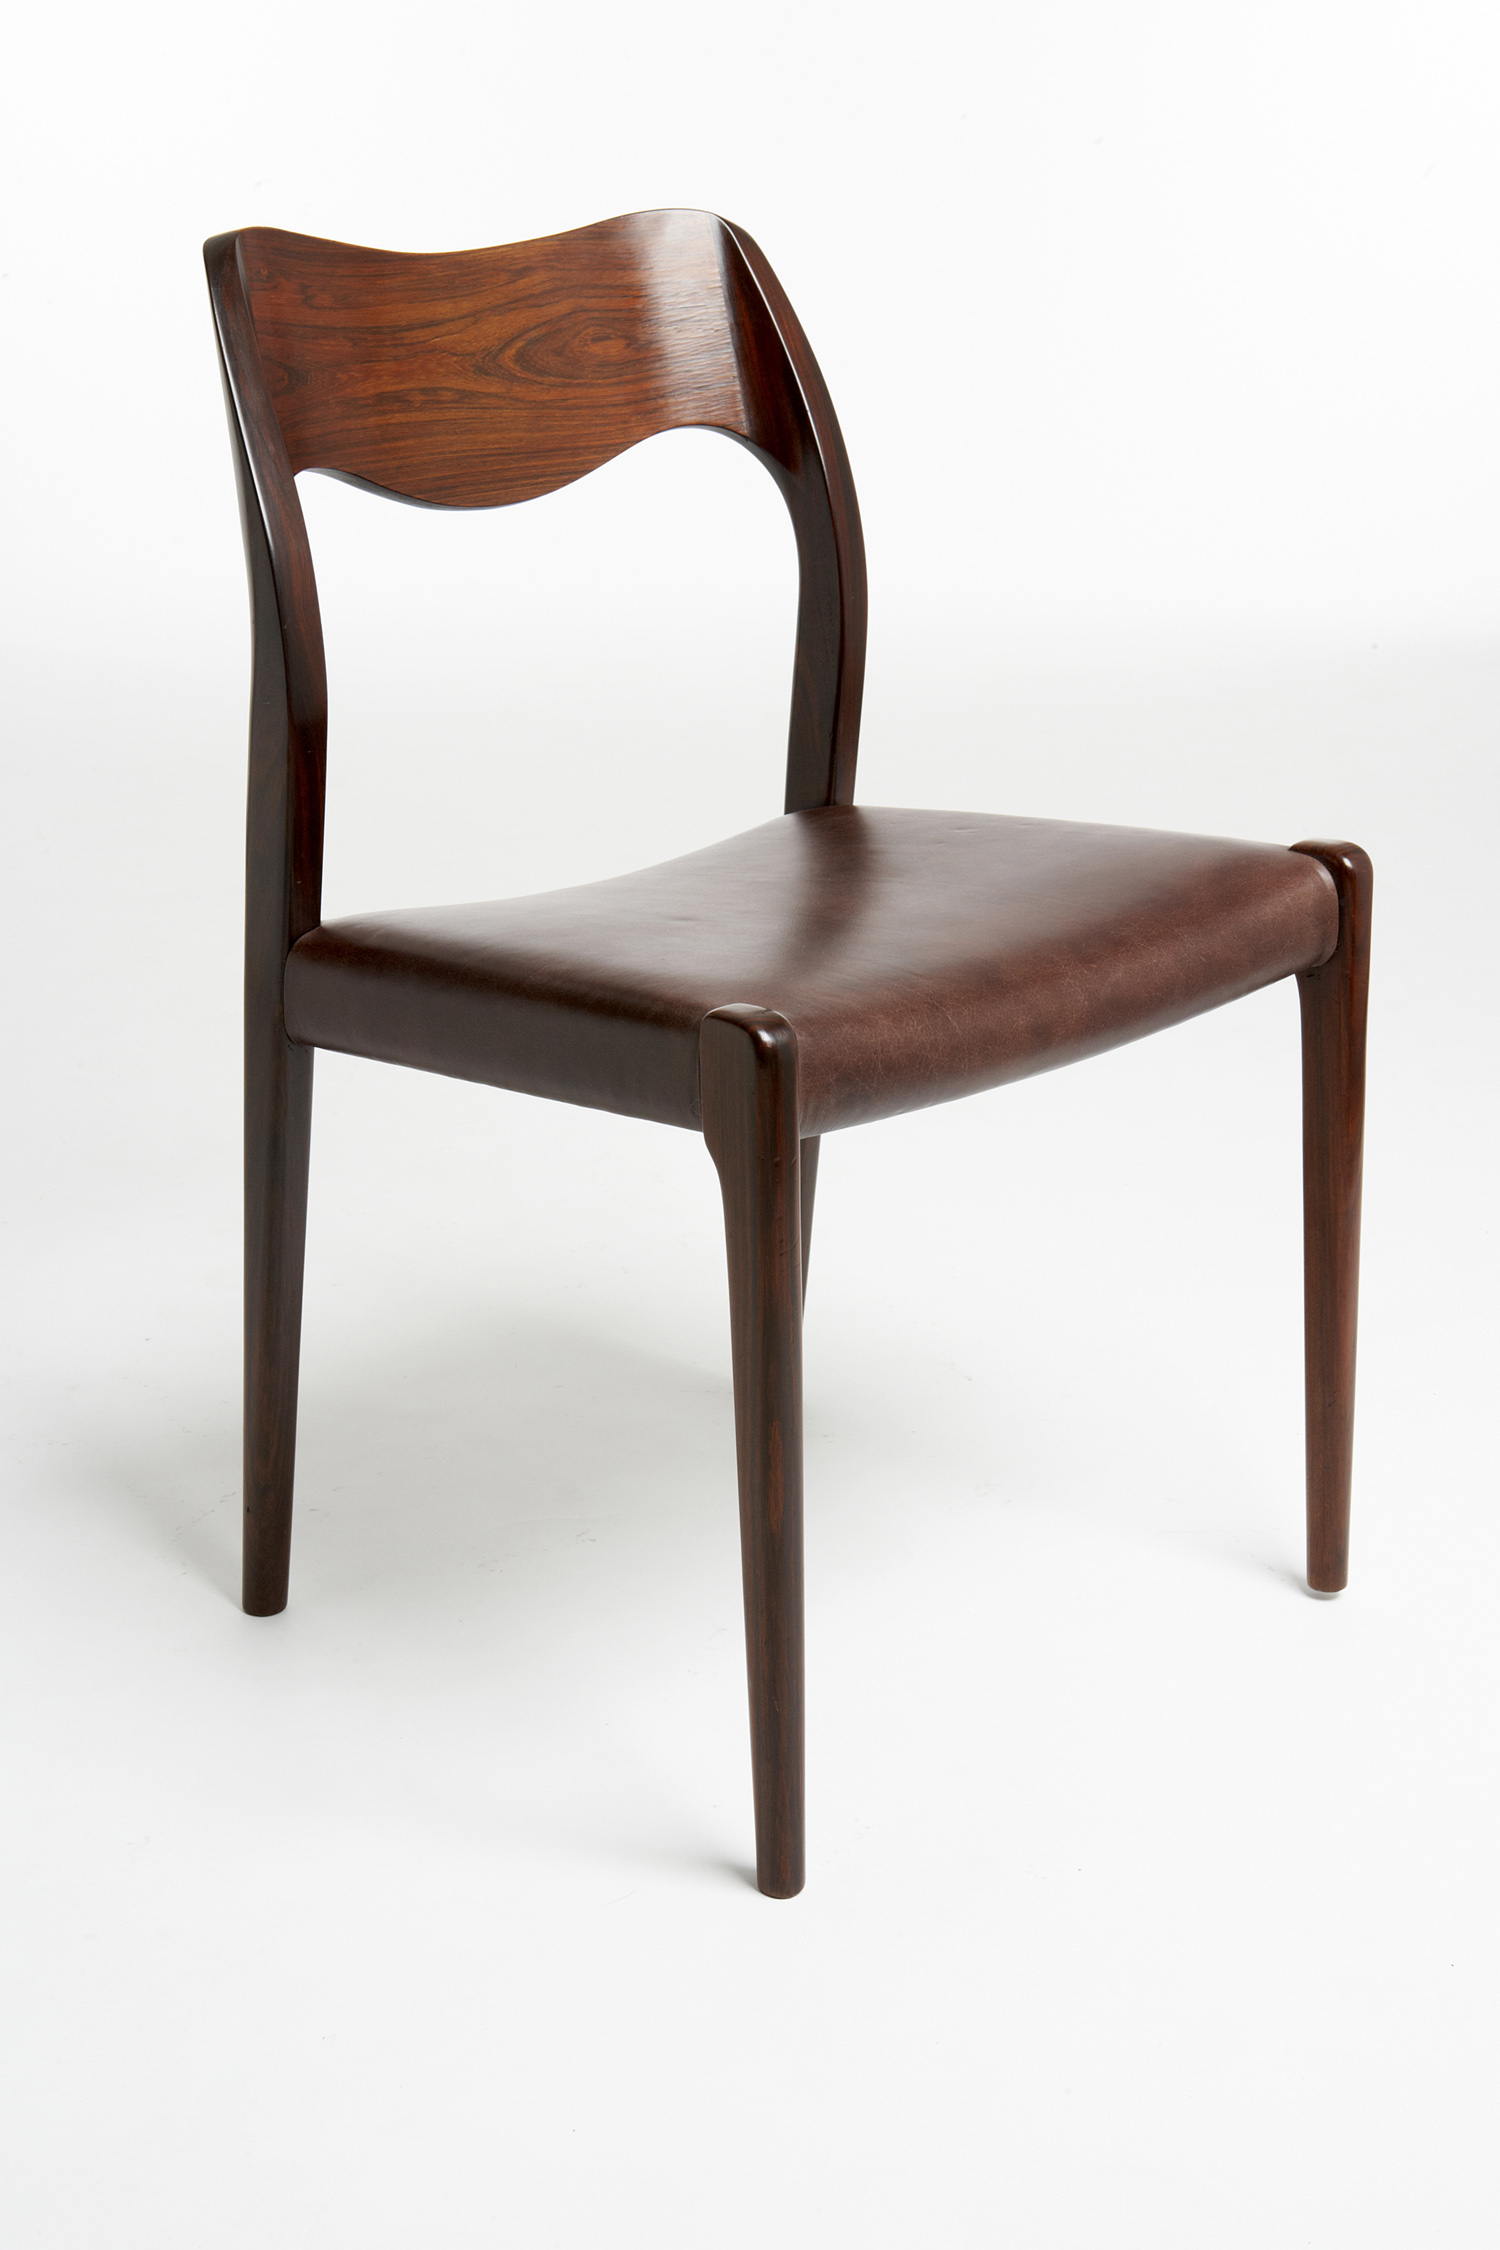 Moller 1951 Dining Chair   • made 1951-90    •